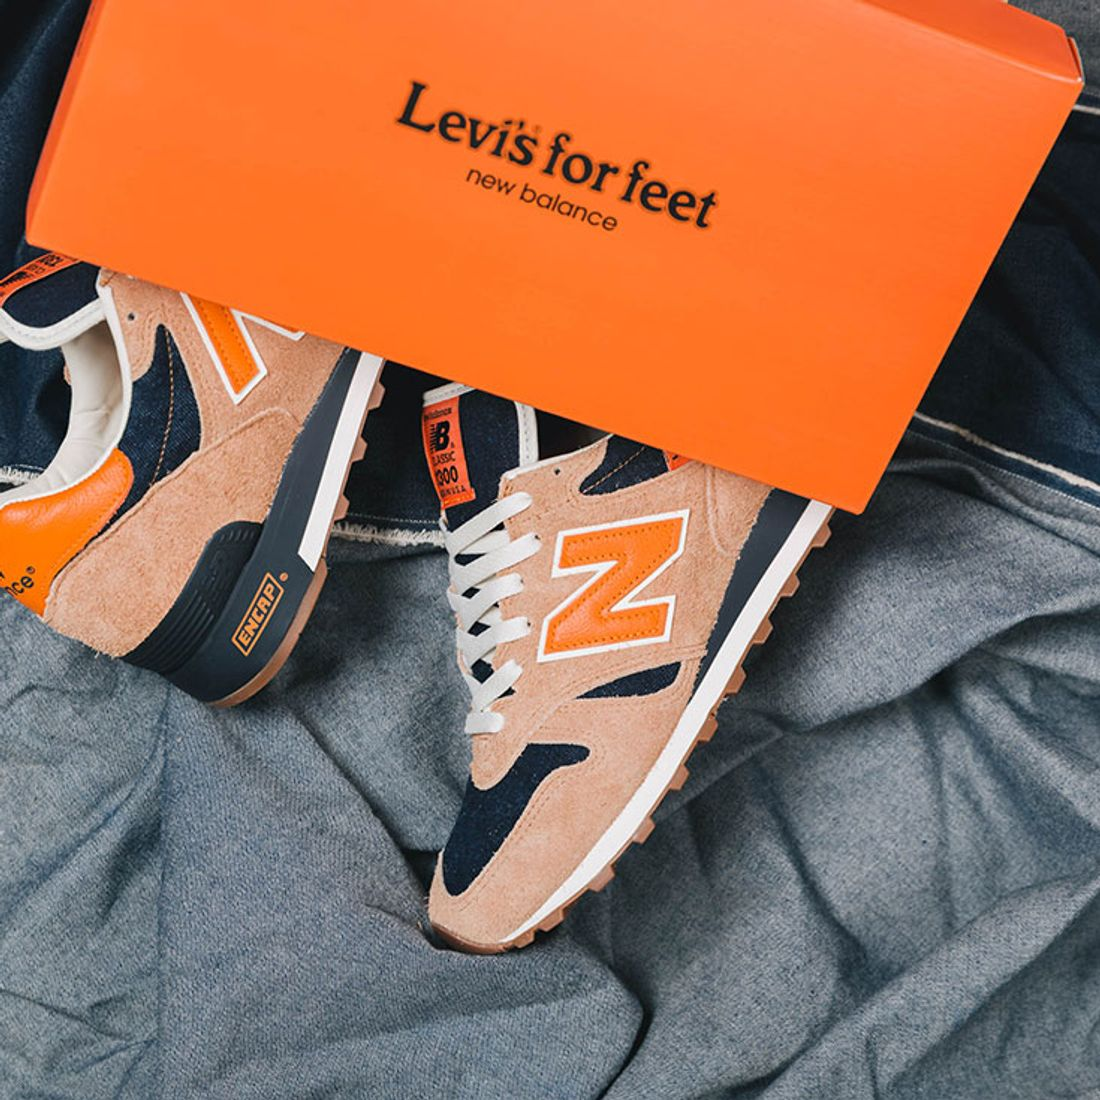 Ladrillo Th crítico  Another Look at the Levi's x New Balance 1300 - Sneaker Freaker